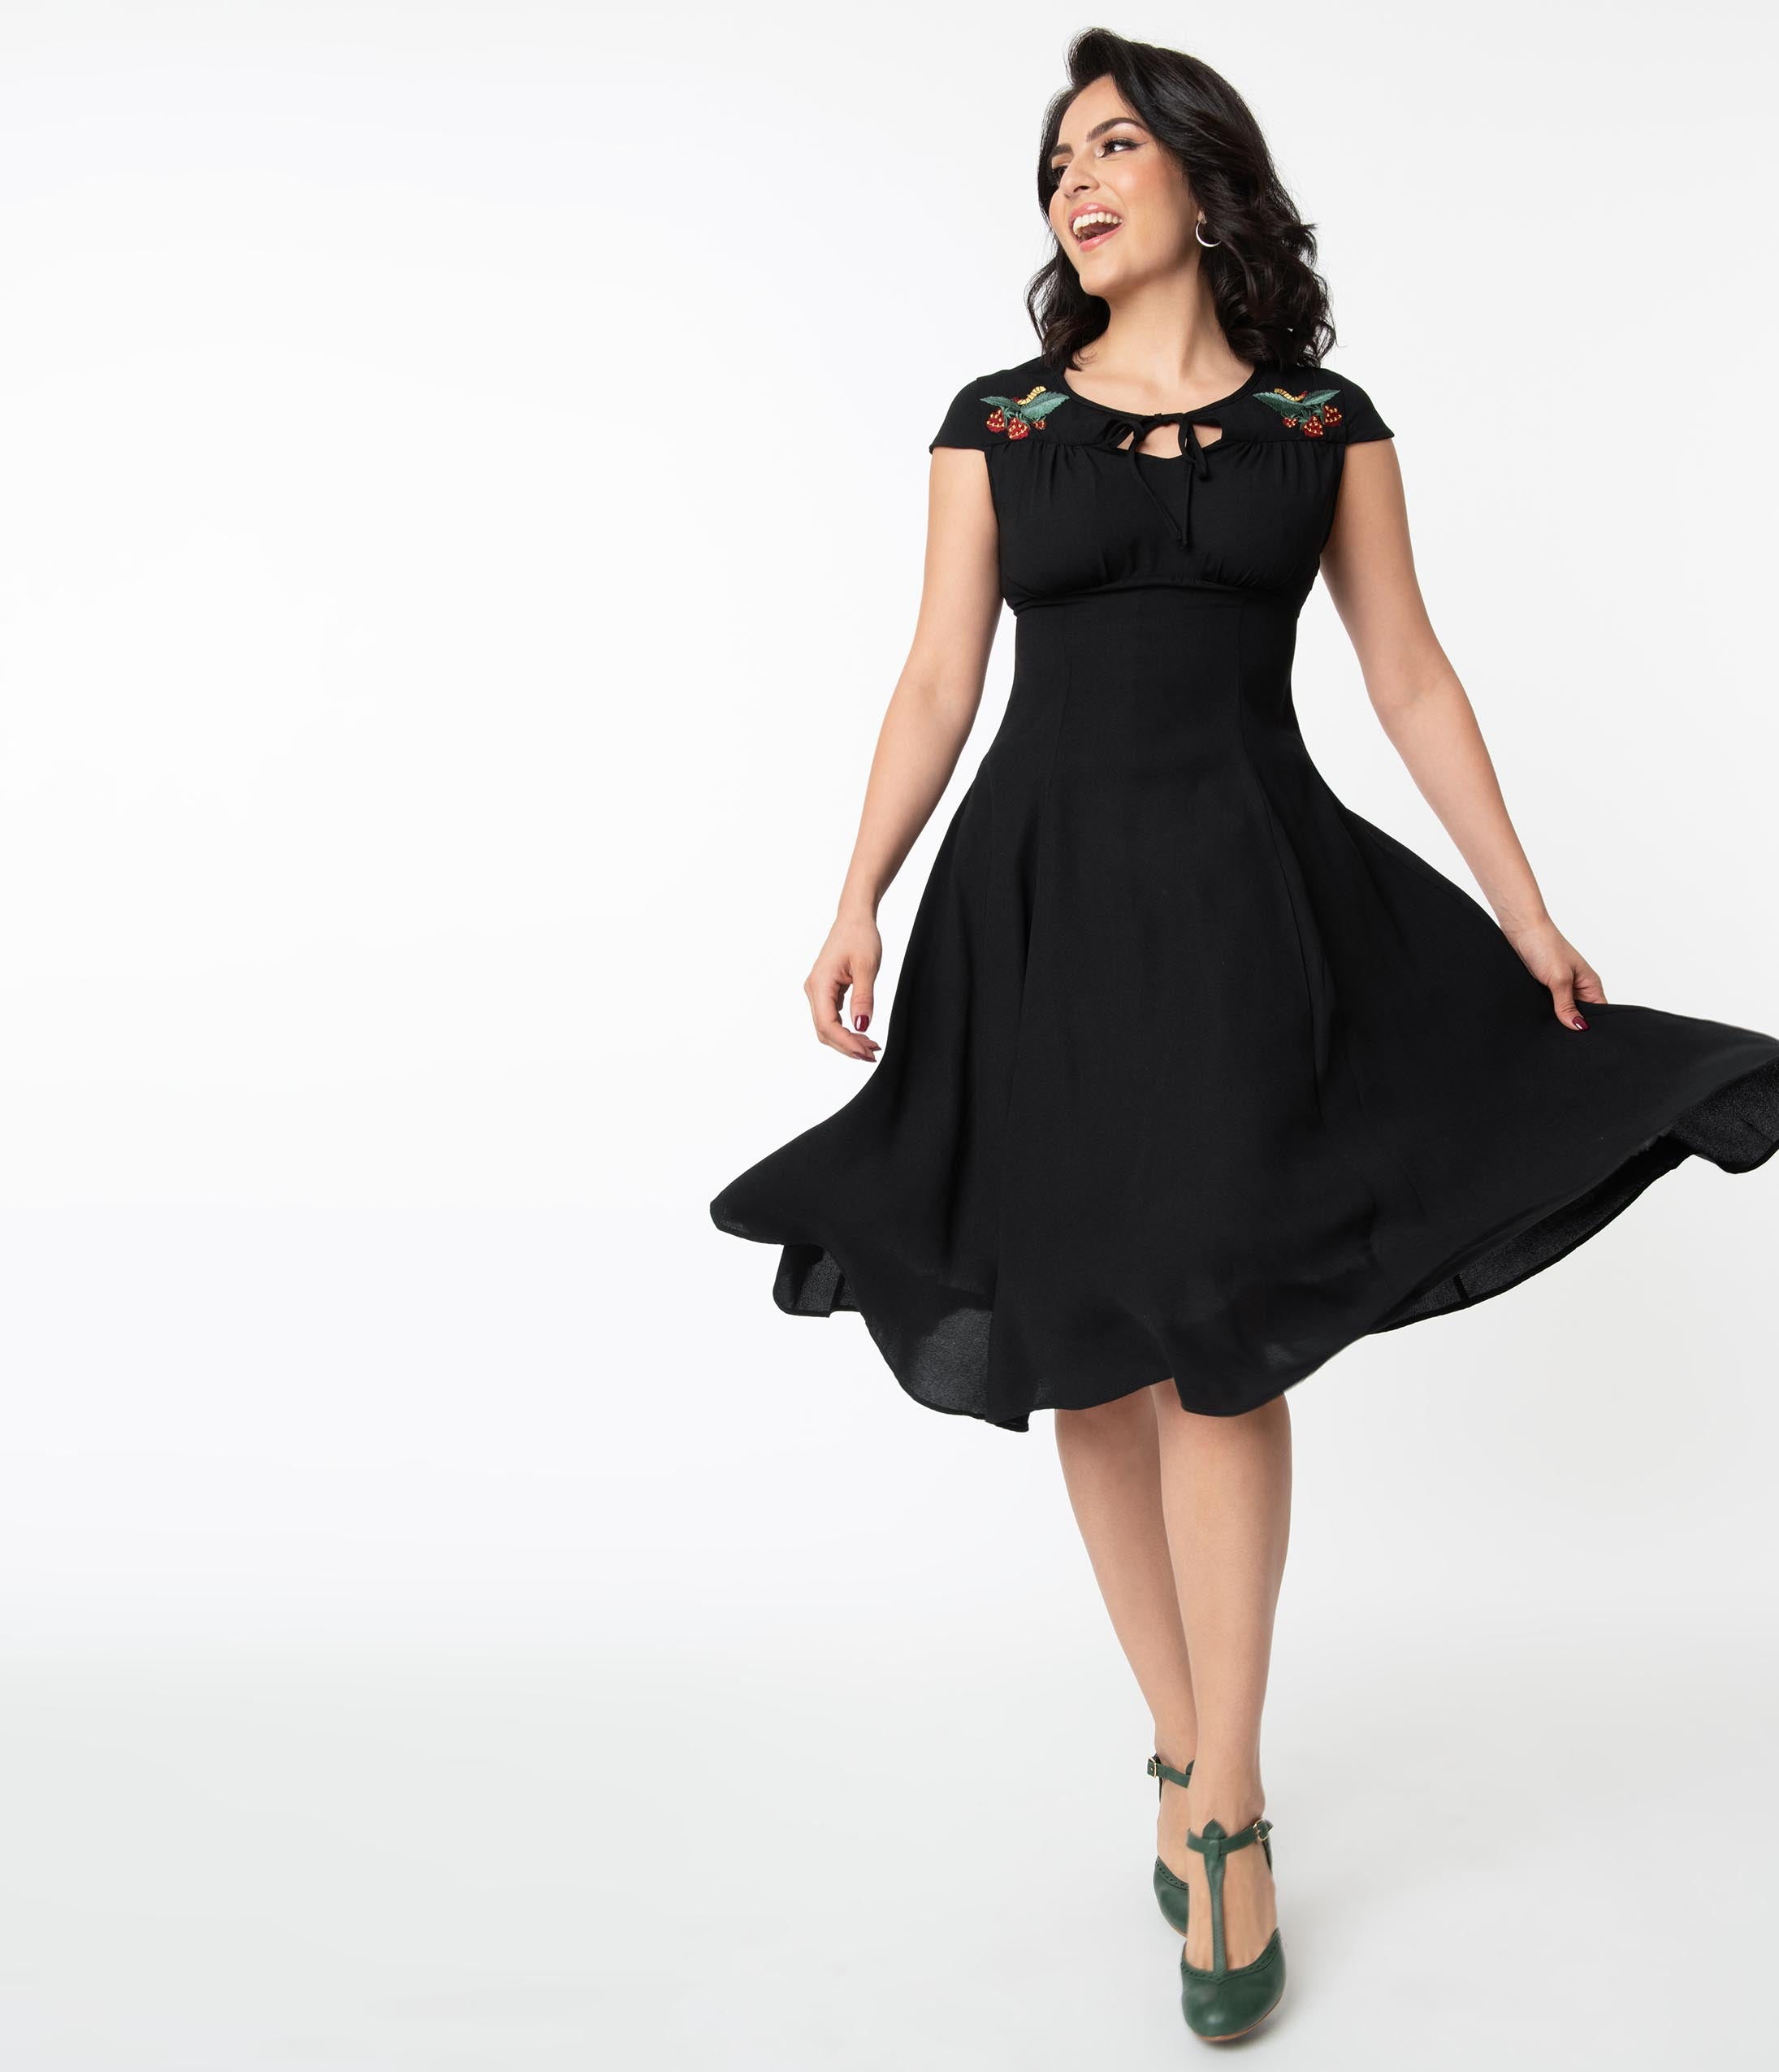 1940s Fashion Advice for Tall Women 1940S Style Black  Strawberry Embroidery Adalee Swing Dress $74.00 AT vintagedancer.com